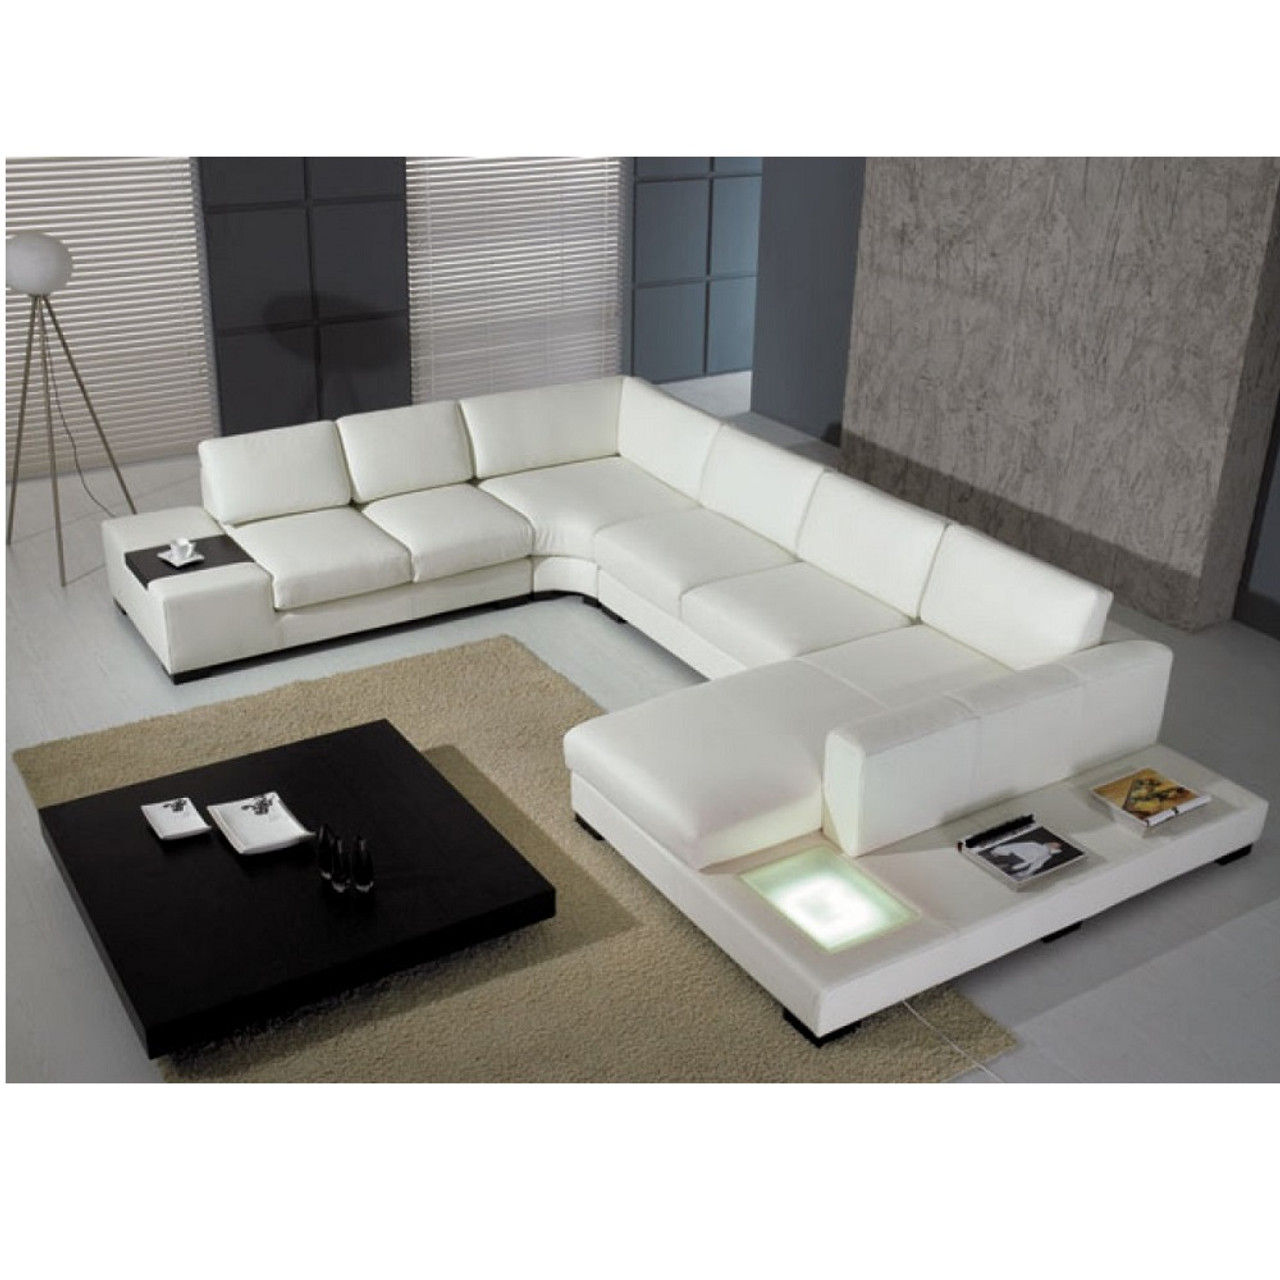 t  modern black leather sectional sofa with light  lounge la - t  white italian leather sectional sofa with light